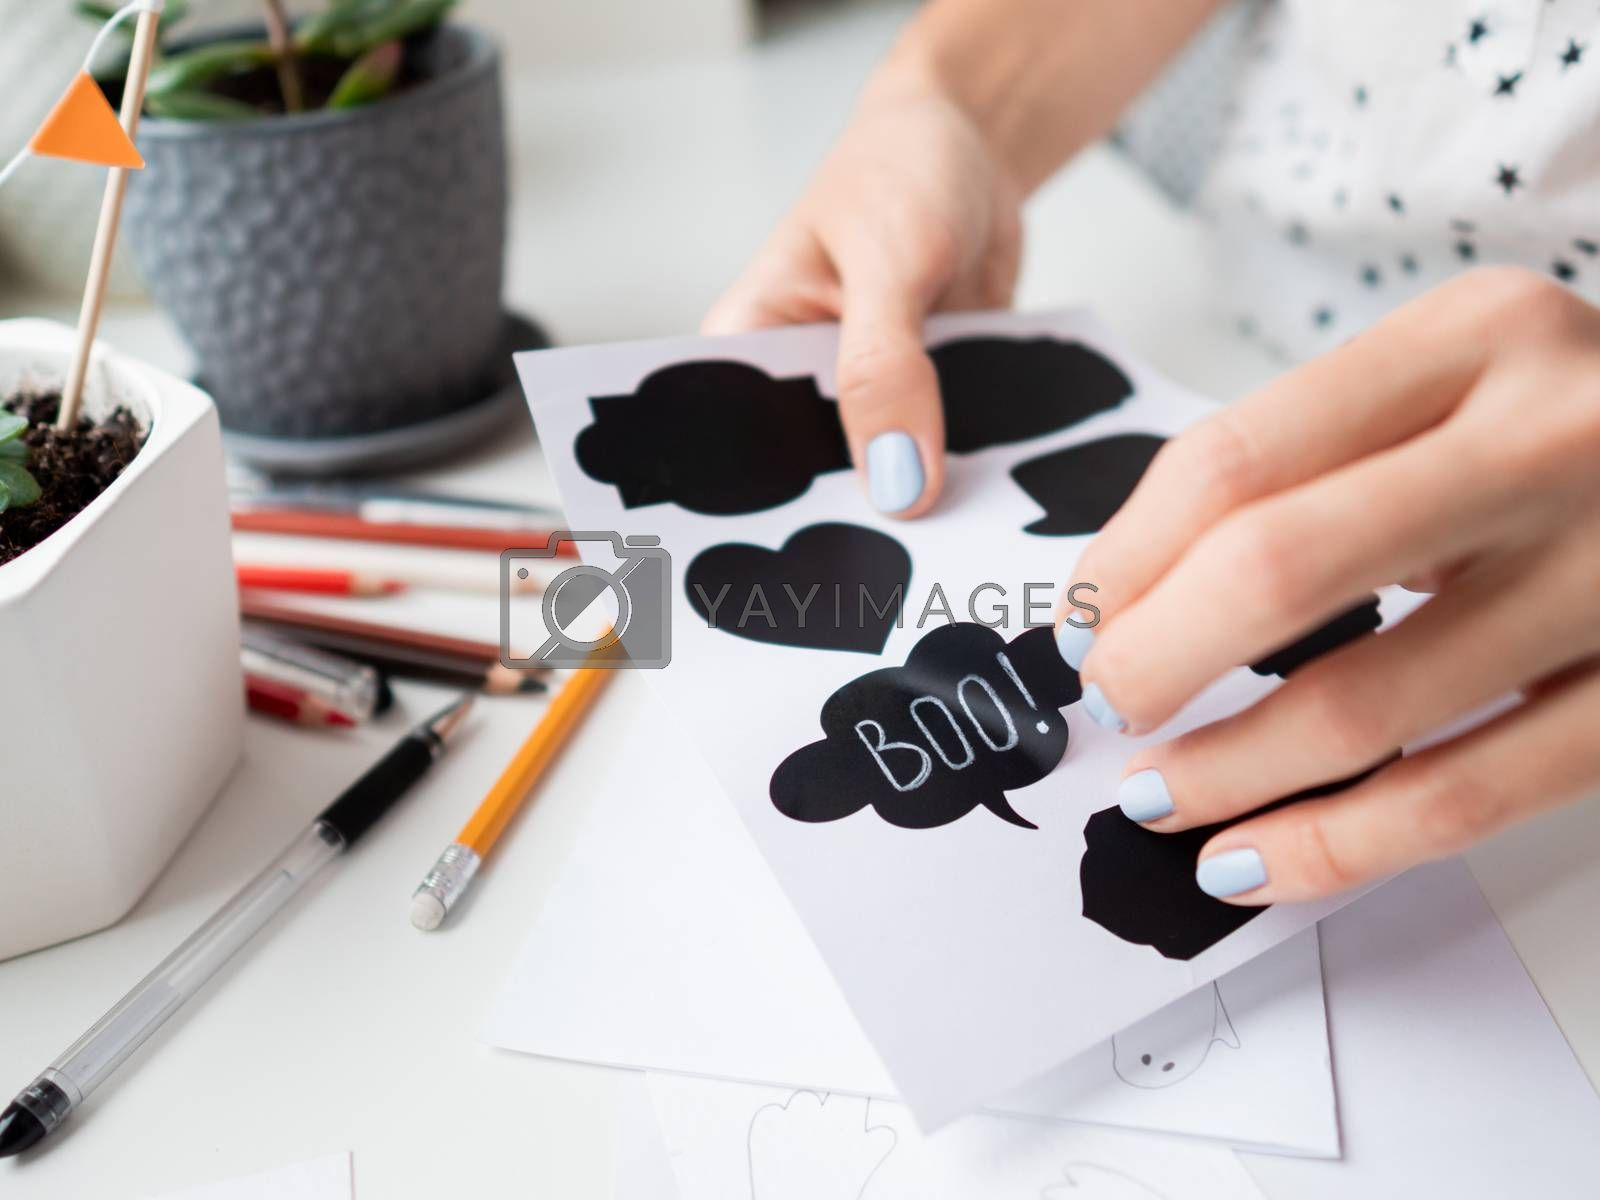 Woman writes Boo! on decorative black stickers for chalks. Handmade decorations for Halloween.